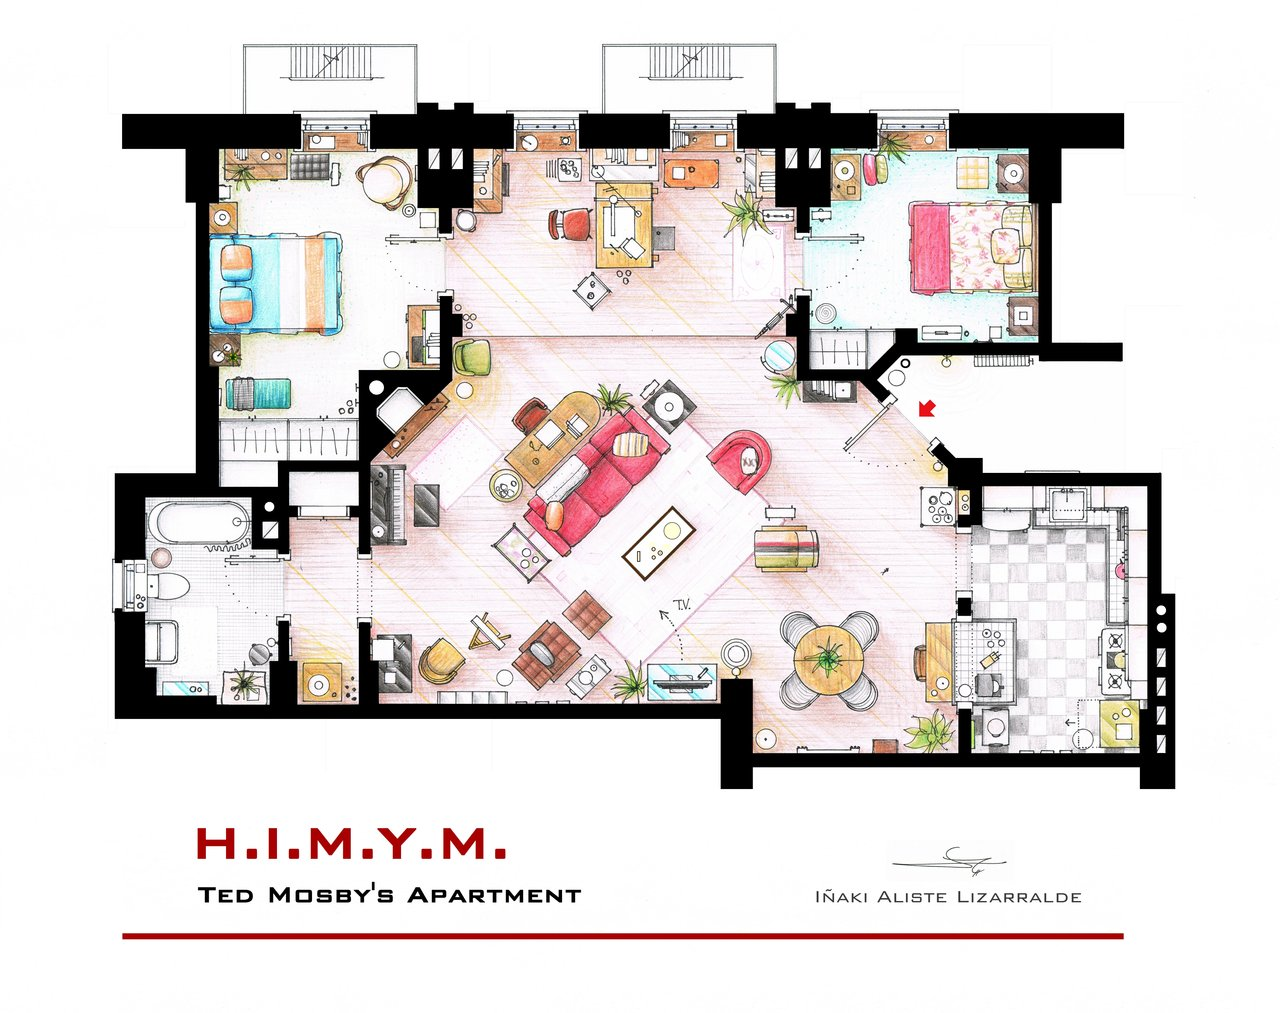 ted_mosby_apartment_from___himym___by_nikneuk-d5ejnxk